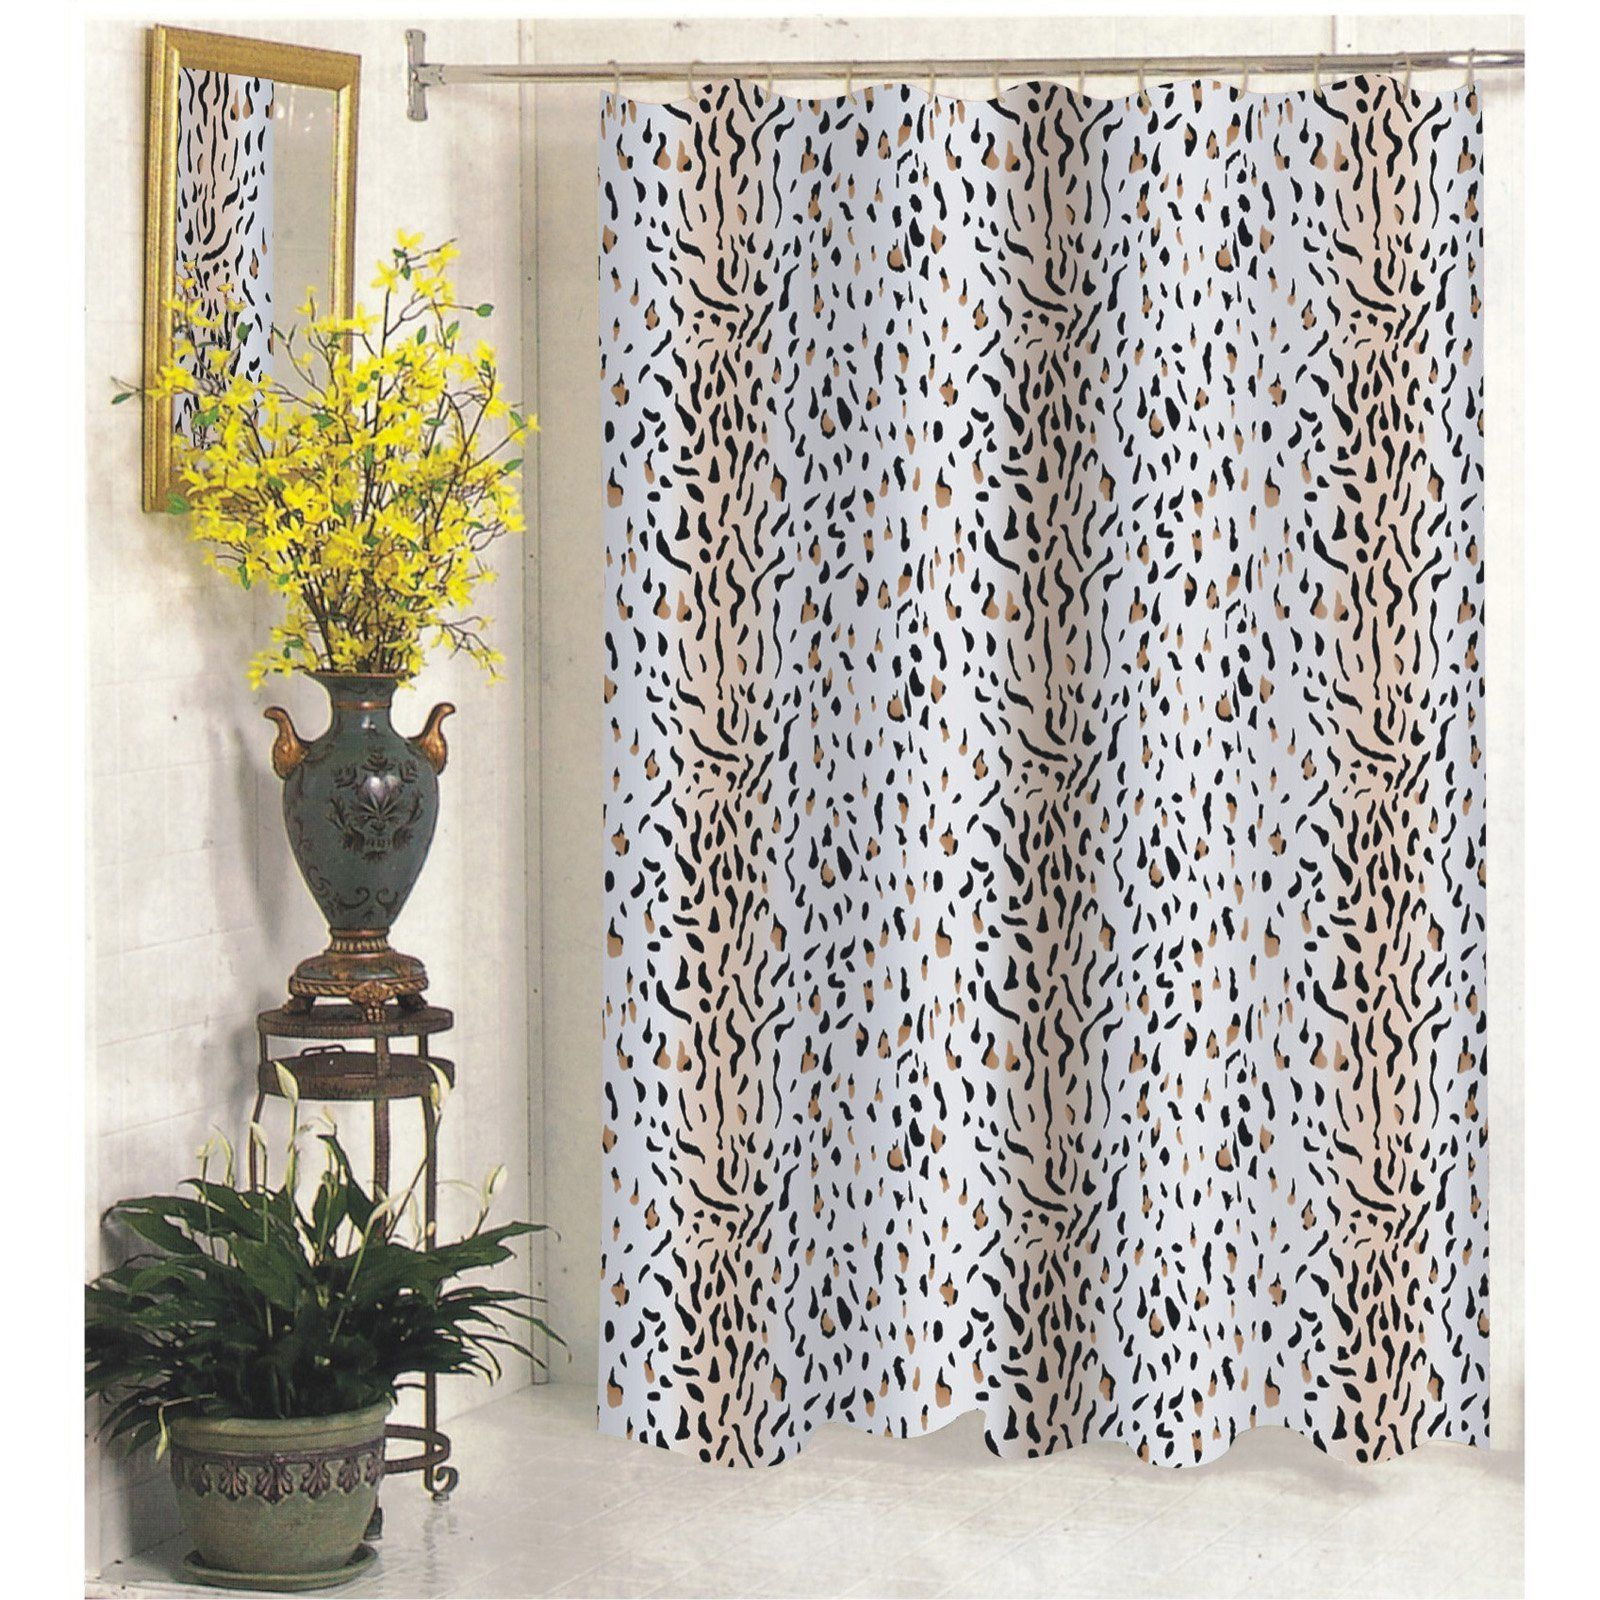 Carnation Home Fashions Hailey Leopard Print Fabric Shower Curtain